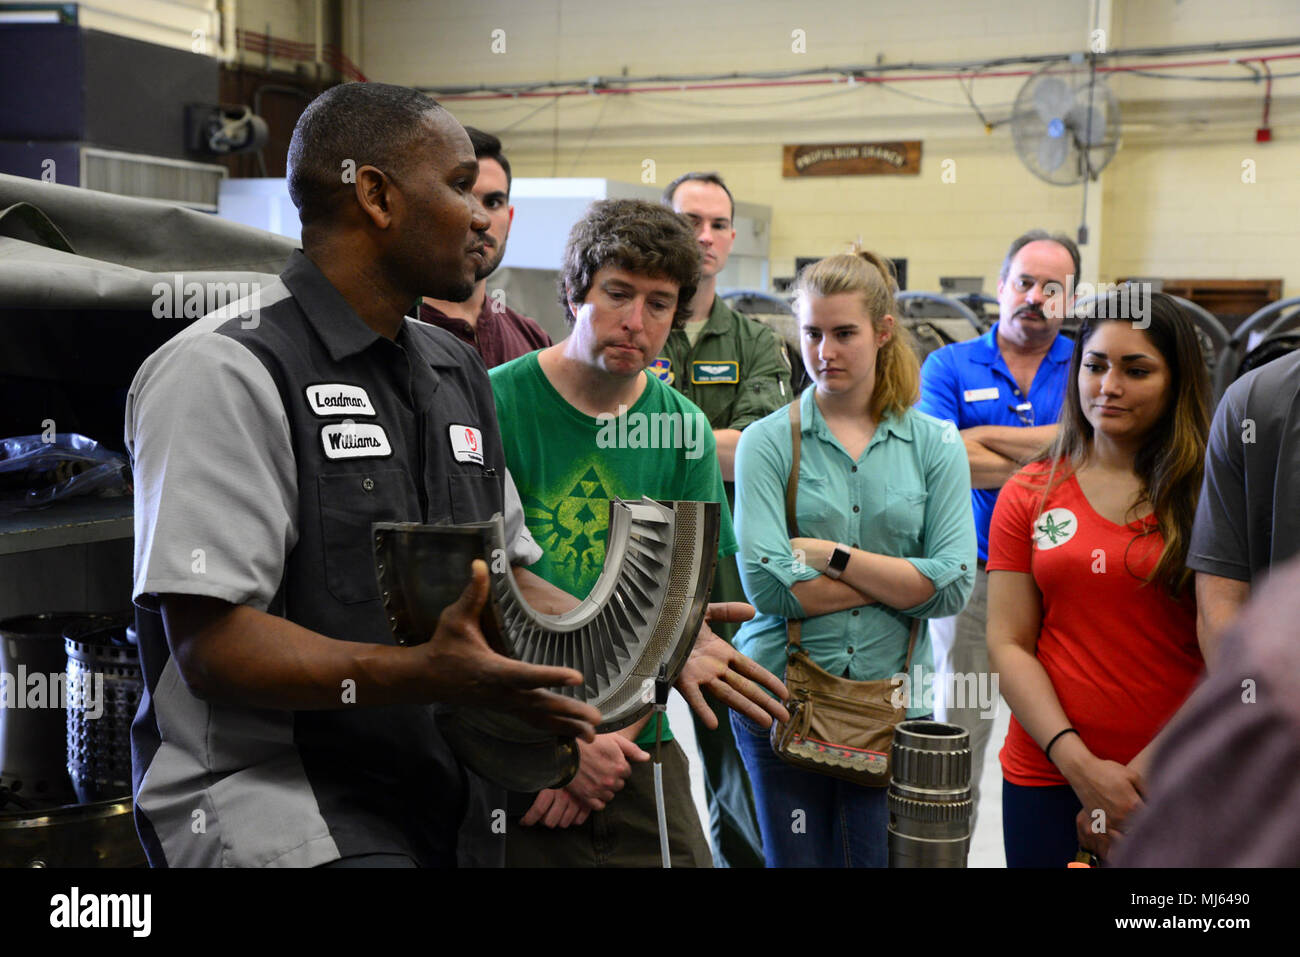 Rodney Williams, L3 Communications Propulsion Lab leadman, talks with the Mississippi State University Aircraft Propulsion Class about parts of a T-38 engine April 4, 2018, on Columbus Air Force Base, Mississippi. The majority of aircraft mechanics on Columbus are contracted through L3 Communications. (U.S. Air Force Image collection celebrating the bravery dedication commitment and sacrifice of U.S. Armed Forces and civilian personnel. - Stock Image